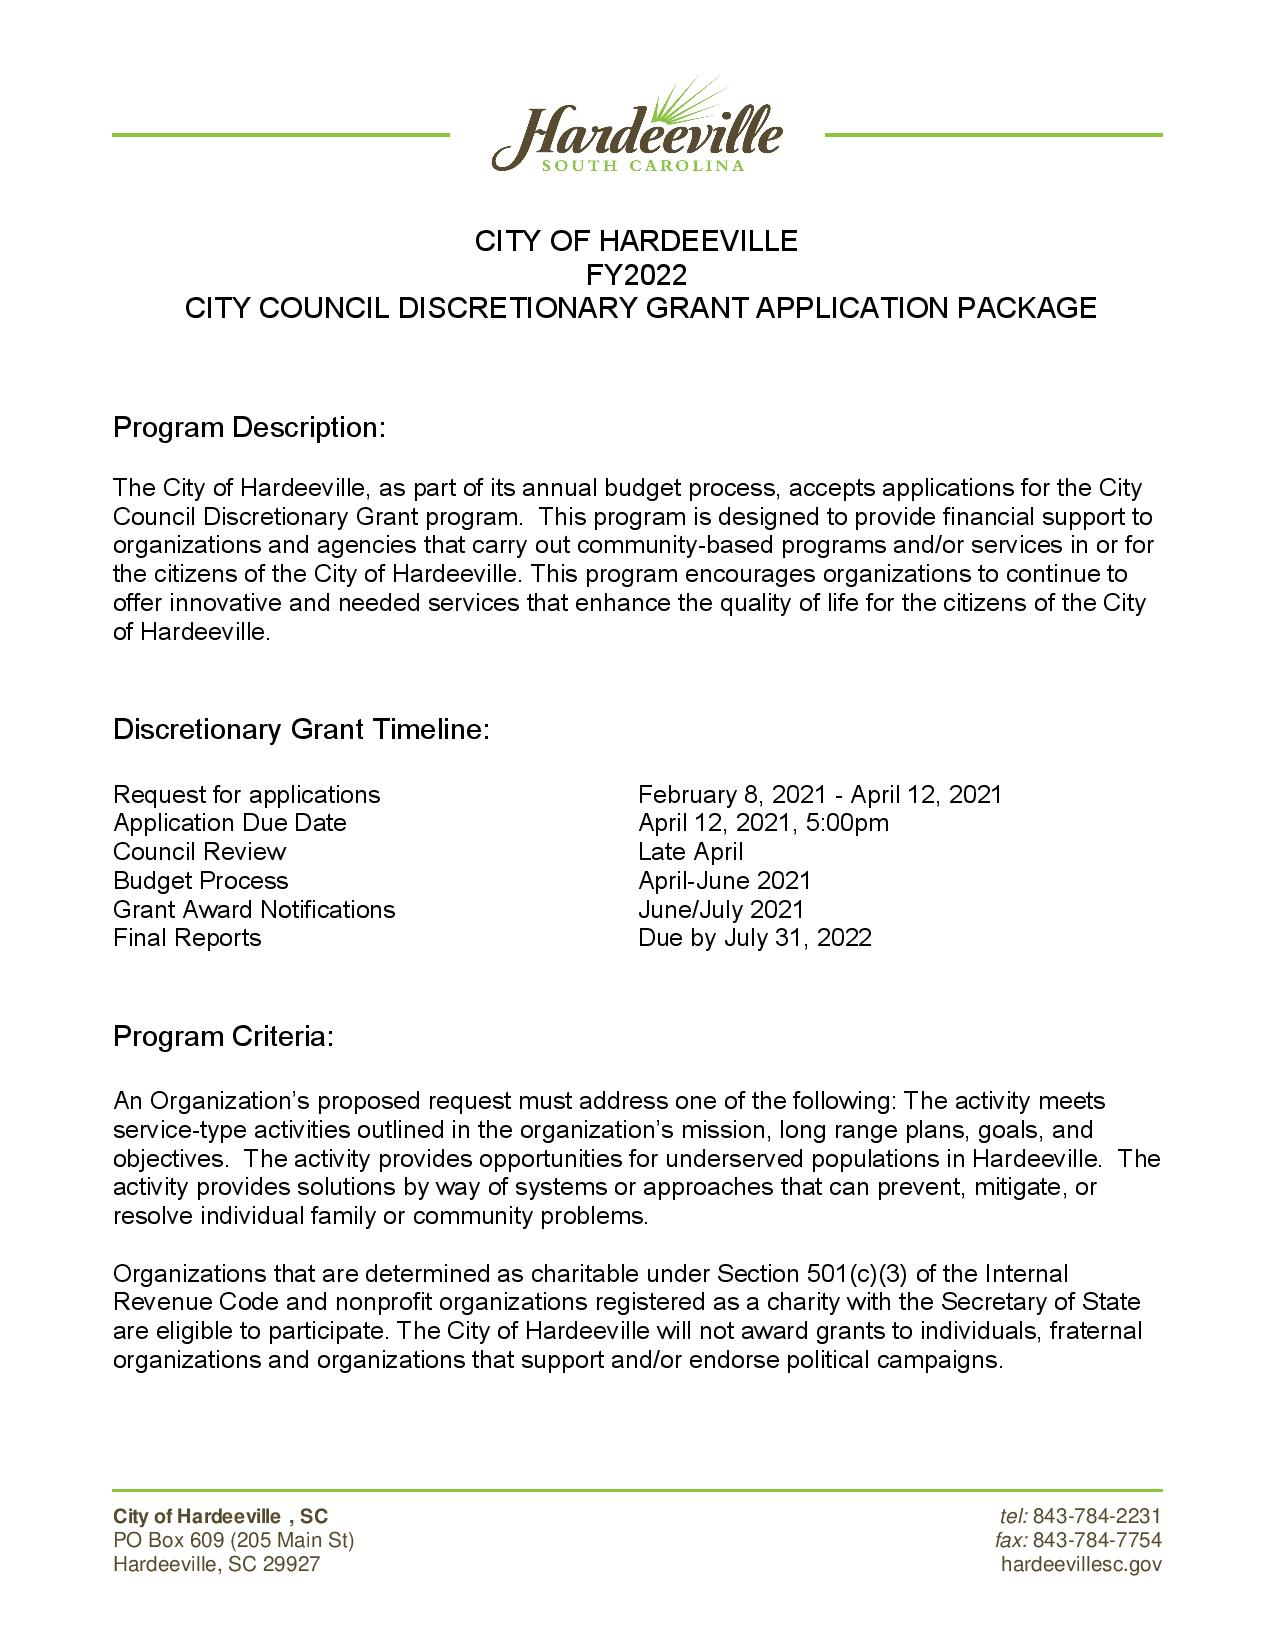 FY 2022 City Council Discretionary Grant Application Package